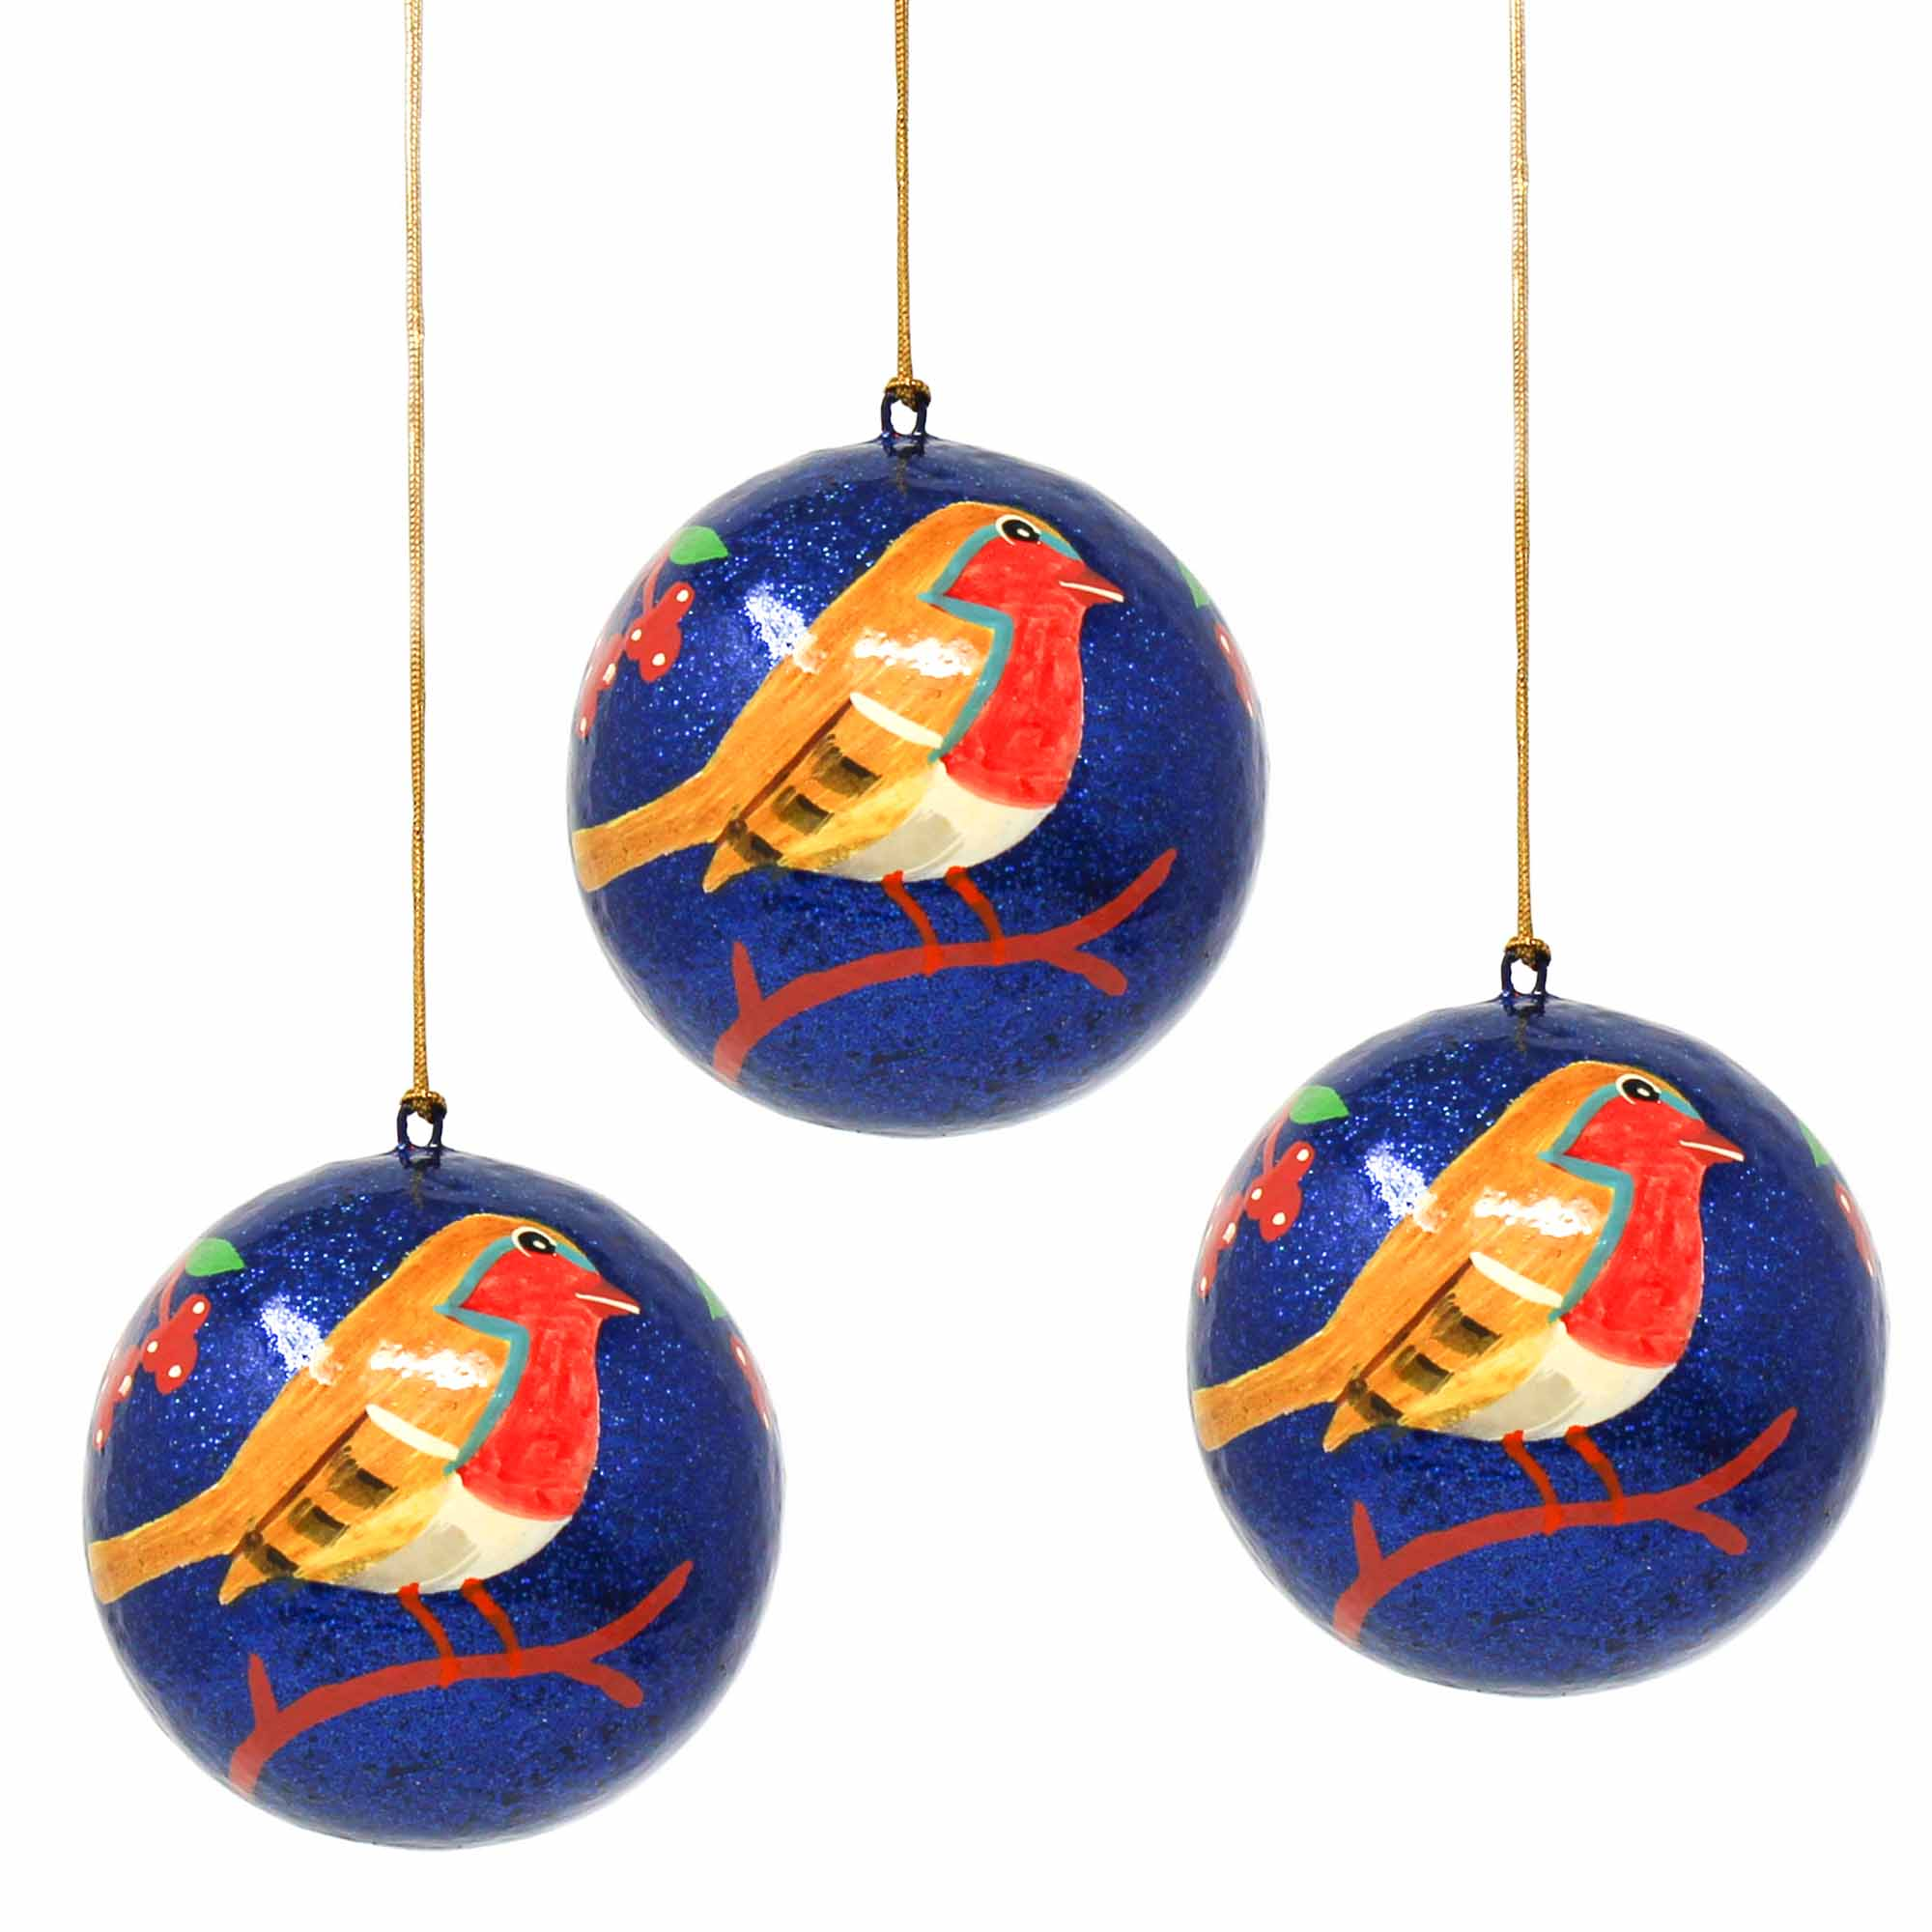 Handpainted Ornament Bird on Branch - Pack of 3